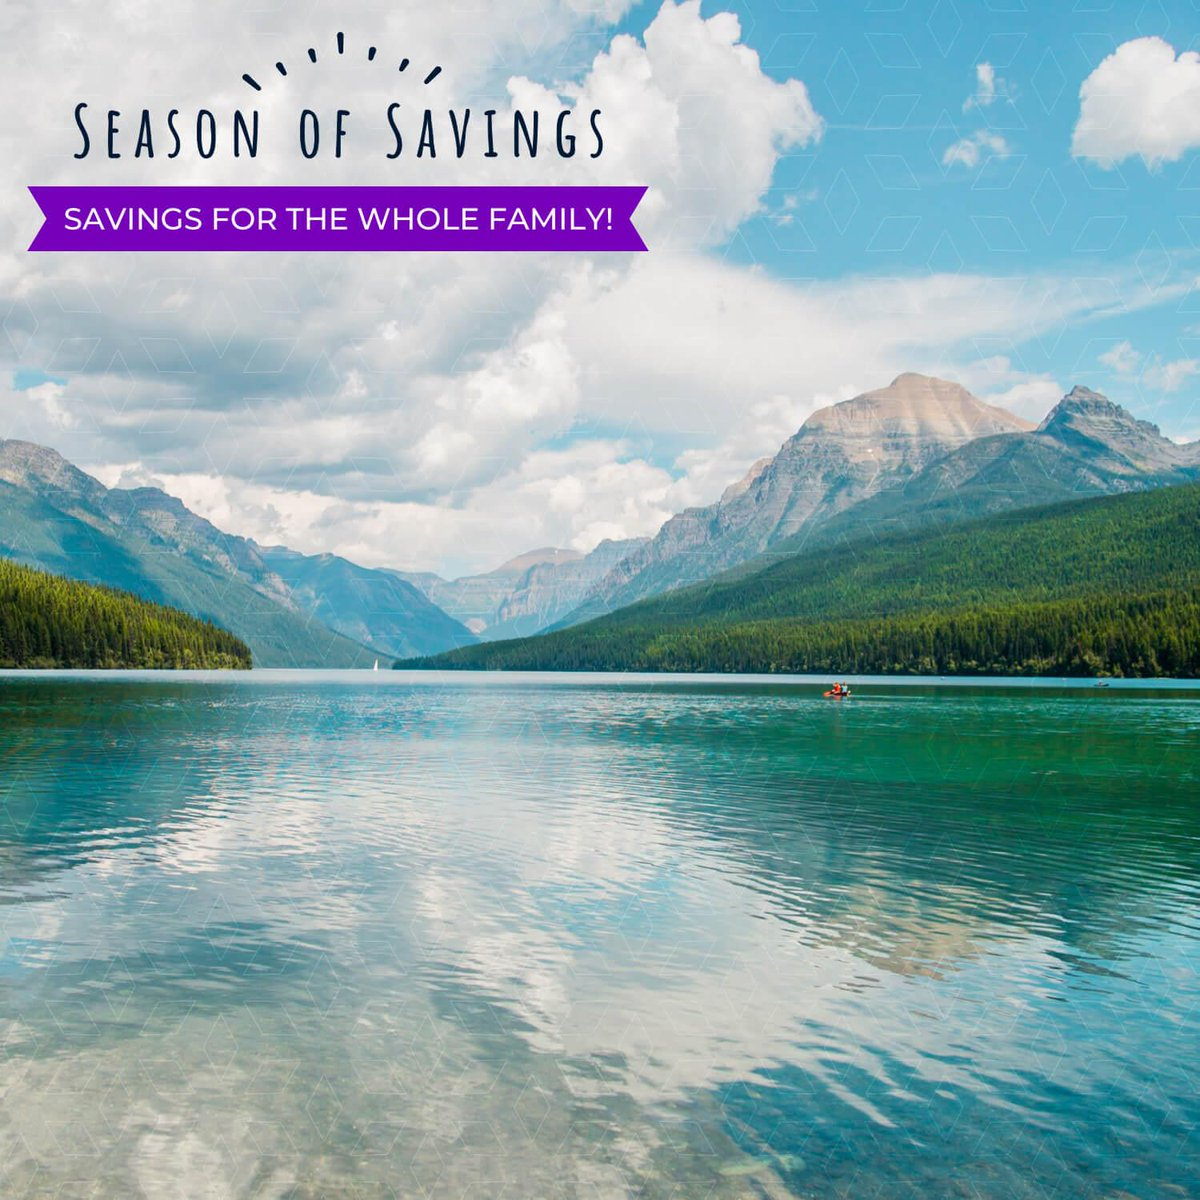 Save more on trips for the whole family! Now through Dec. 23, Express Deal hotels are on sale in Denver, Chicago, Seattle, New York, San Francisco, Washington, D.C., Boston, Orlando and Park City as we help you save even more with our #seasonofsavings: https://t.co/OMuRcqRIG0